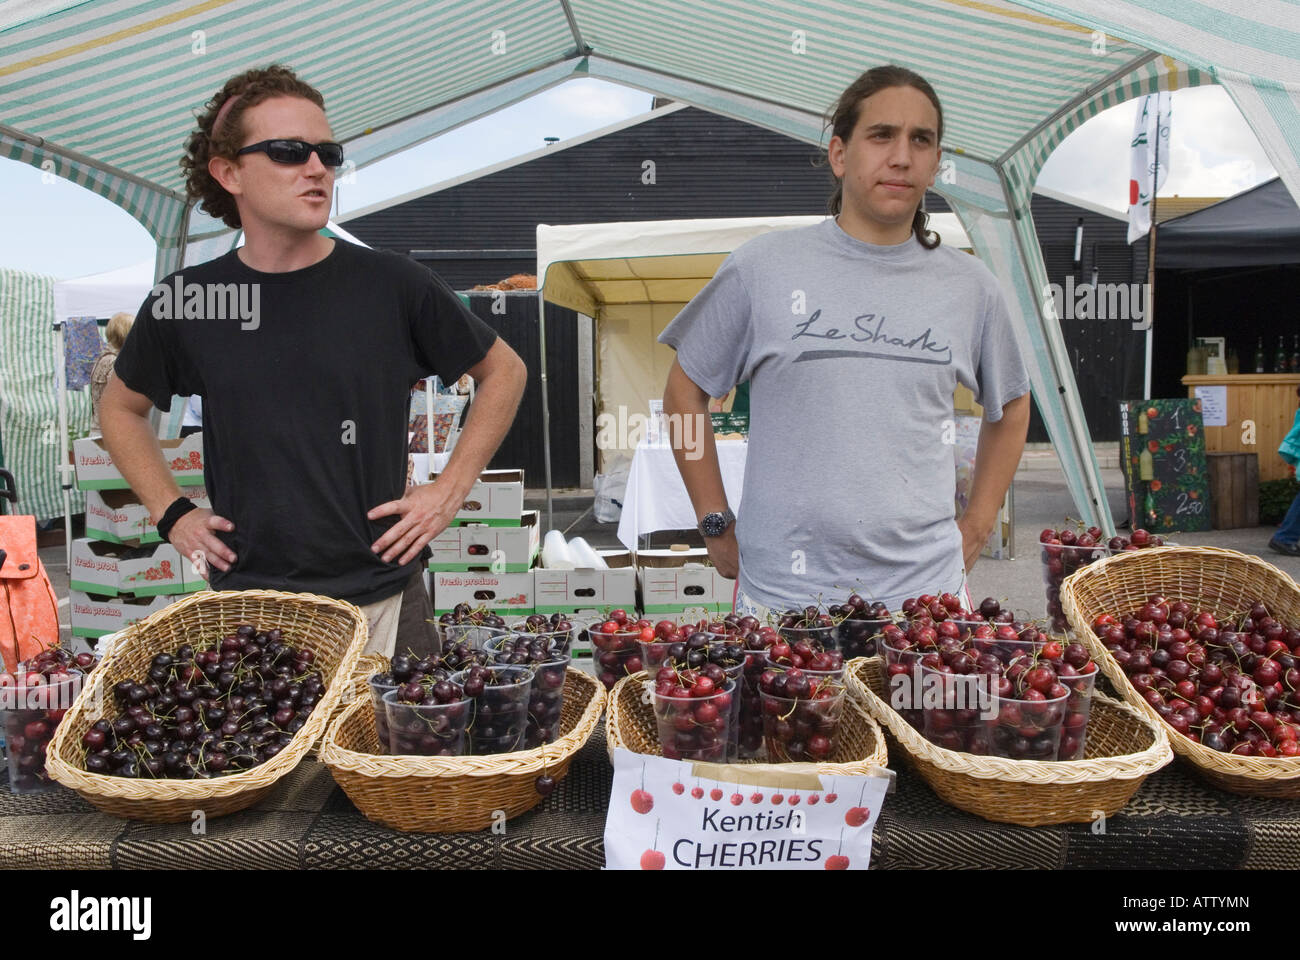 Men selling locally grown Kentish cherries at Farmers Market Whitstable Kent England - Stock Image